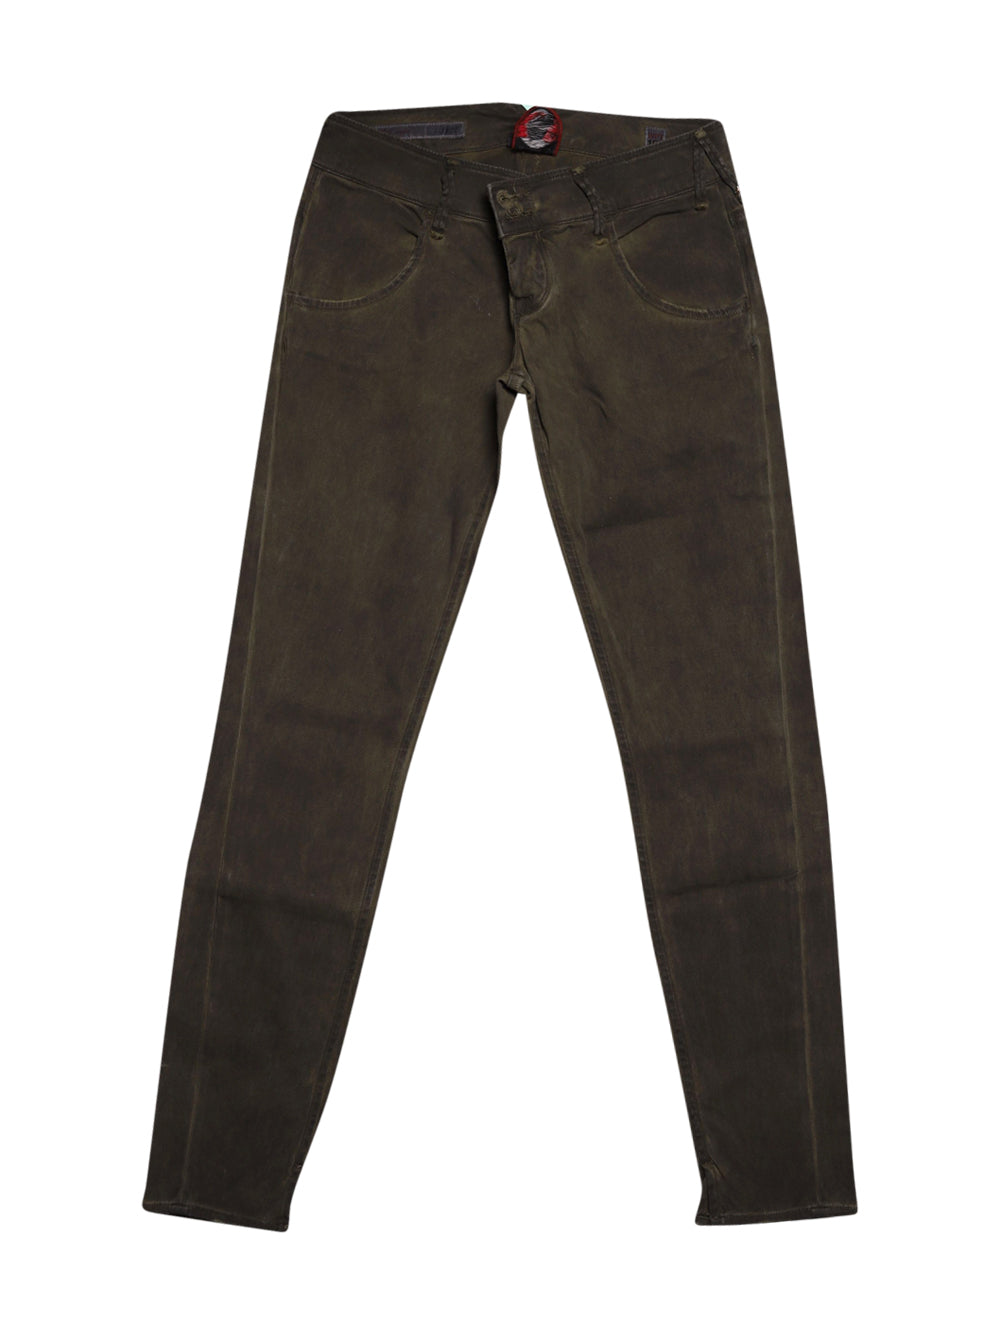 Front photo of Preloved cycle Green Woman's trousers - size 10/M